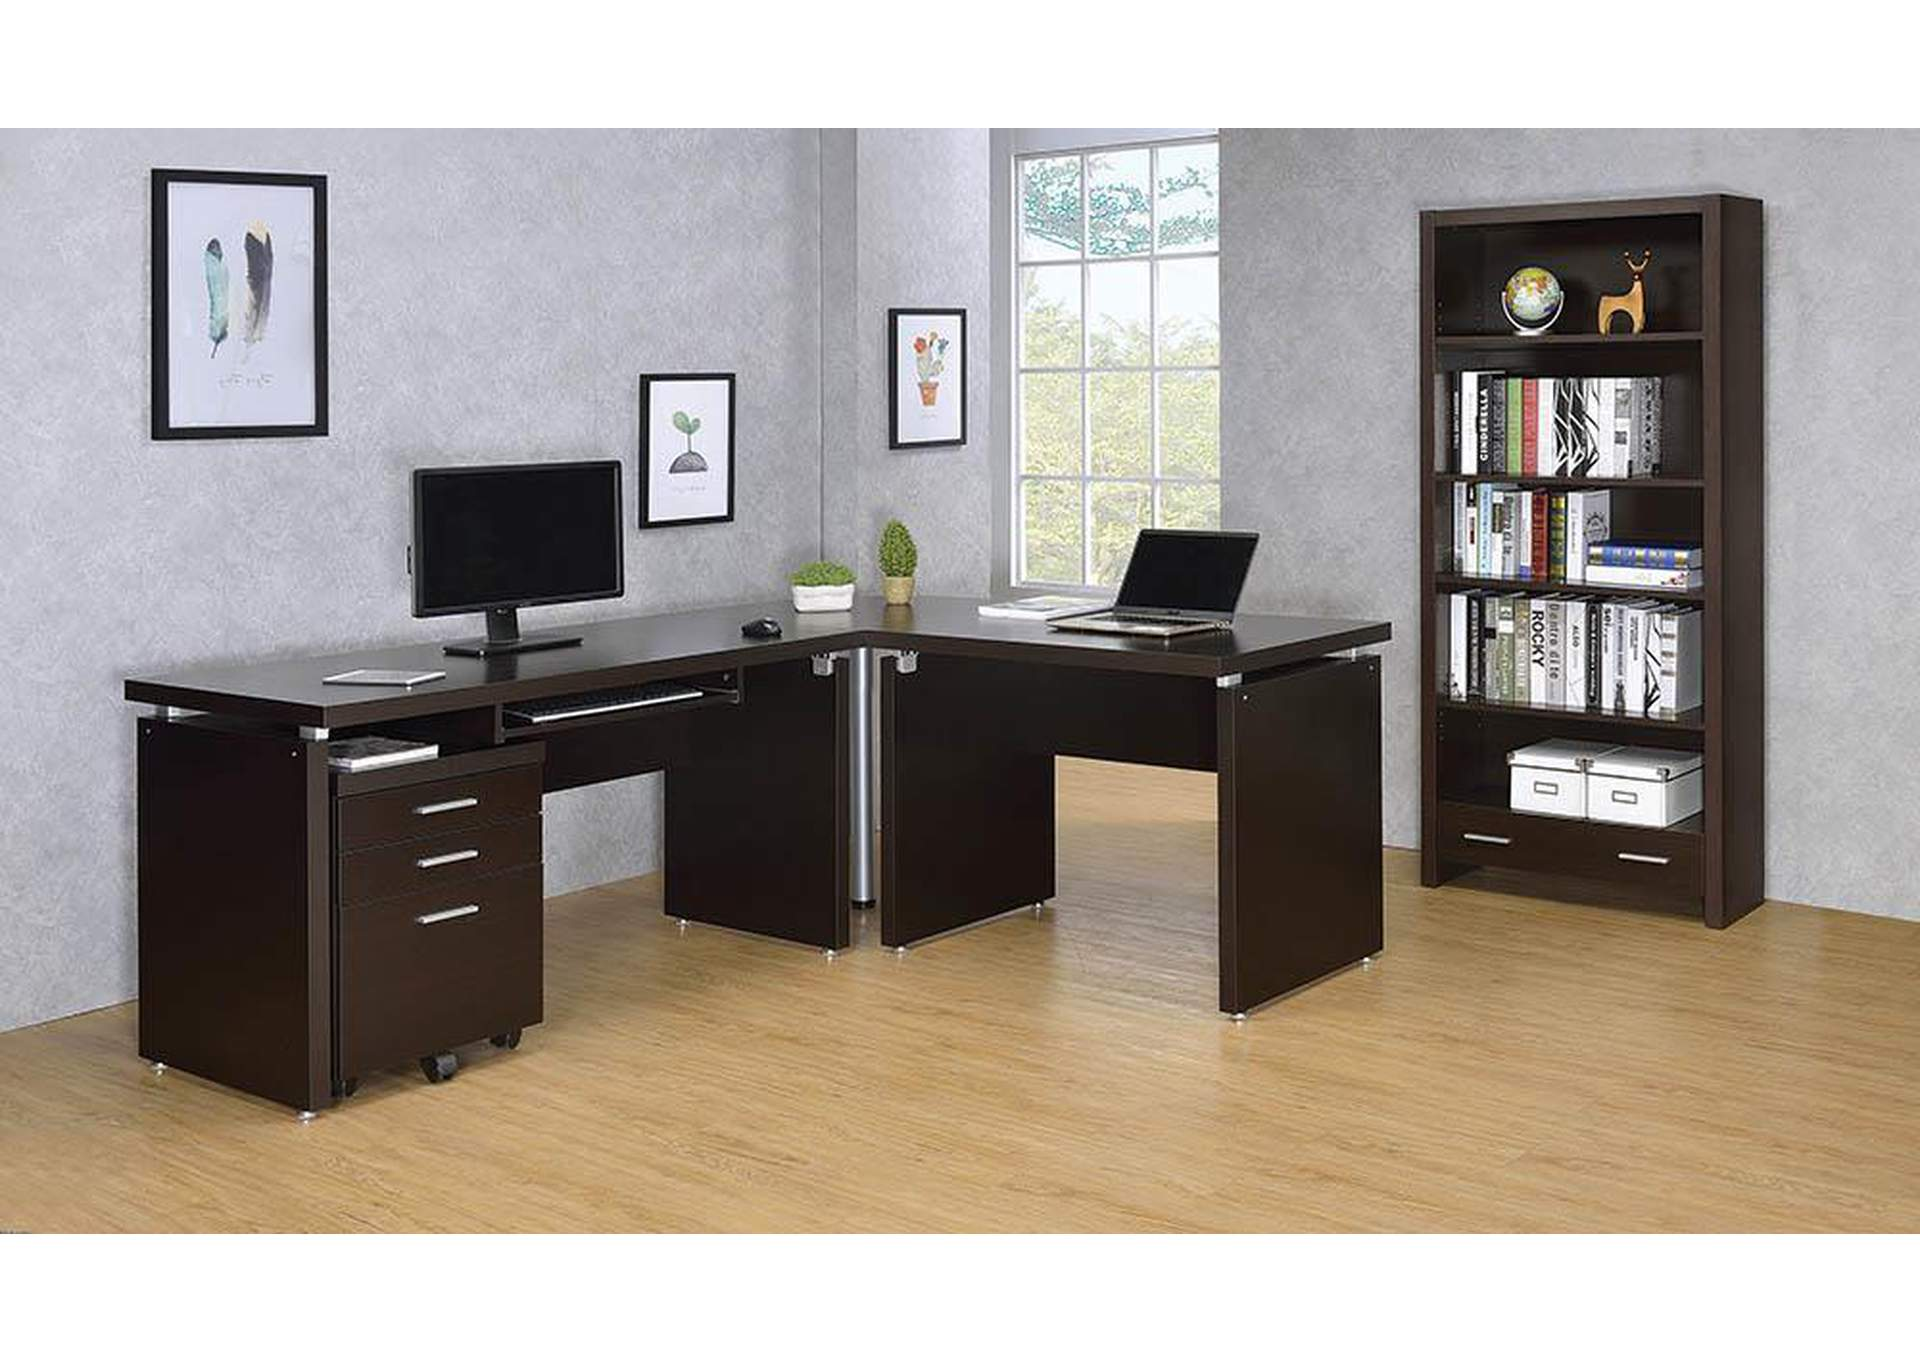 Skylar Cappuccino Three-Drawer File Cabinet,Coaster Furniture